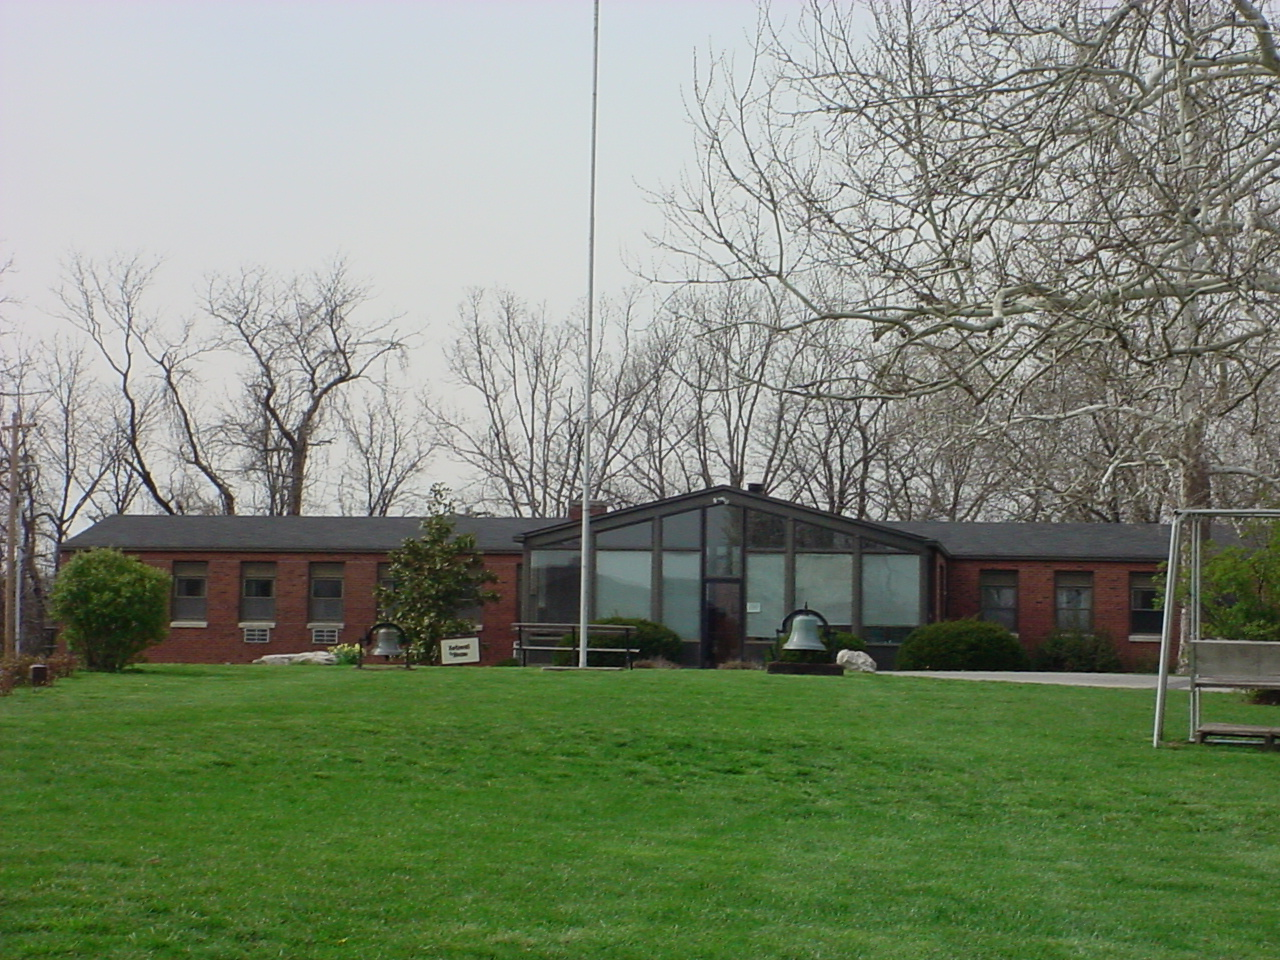 St. Francis Retreat House